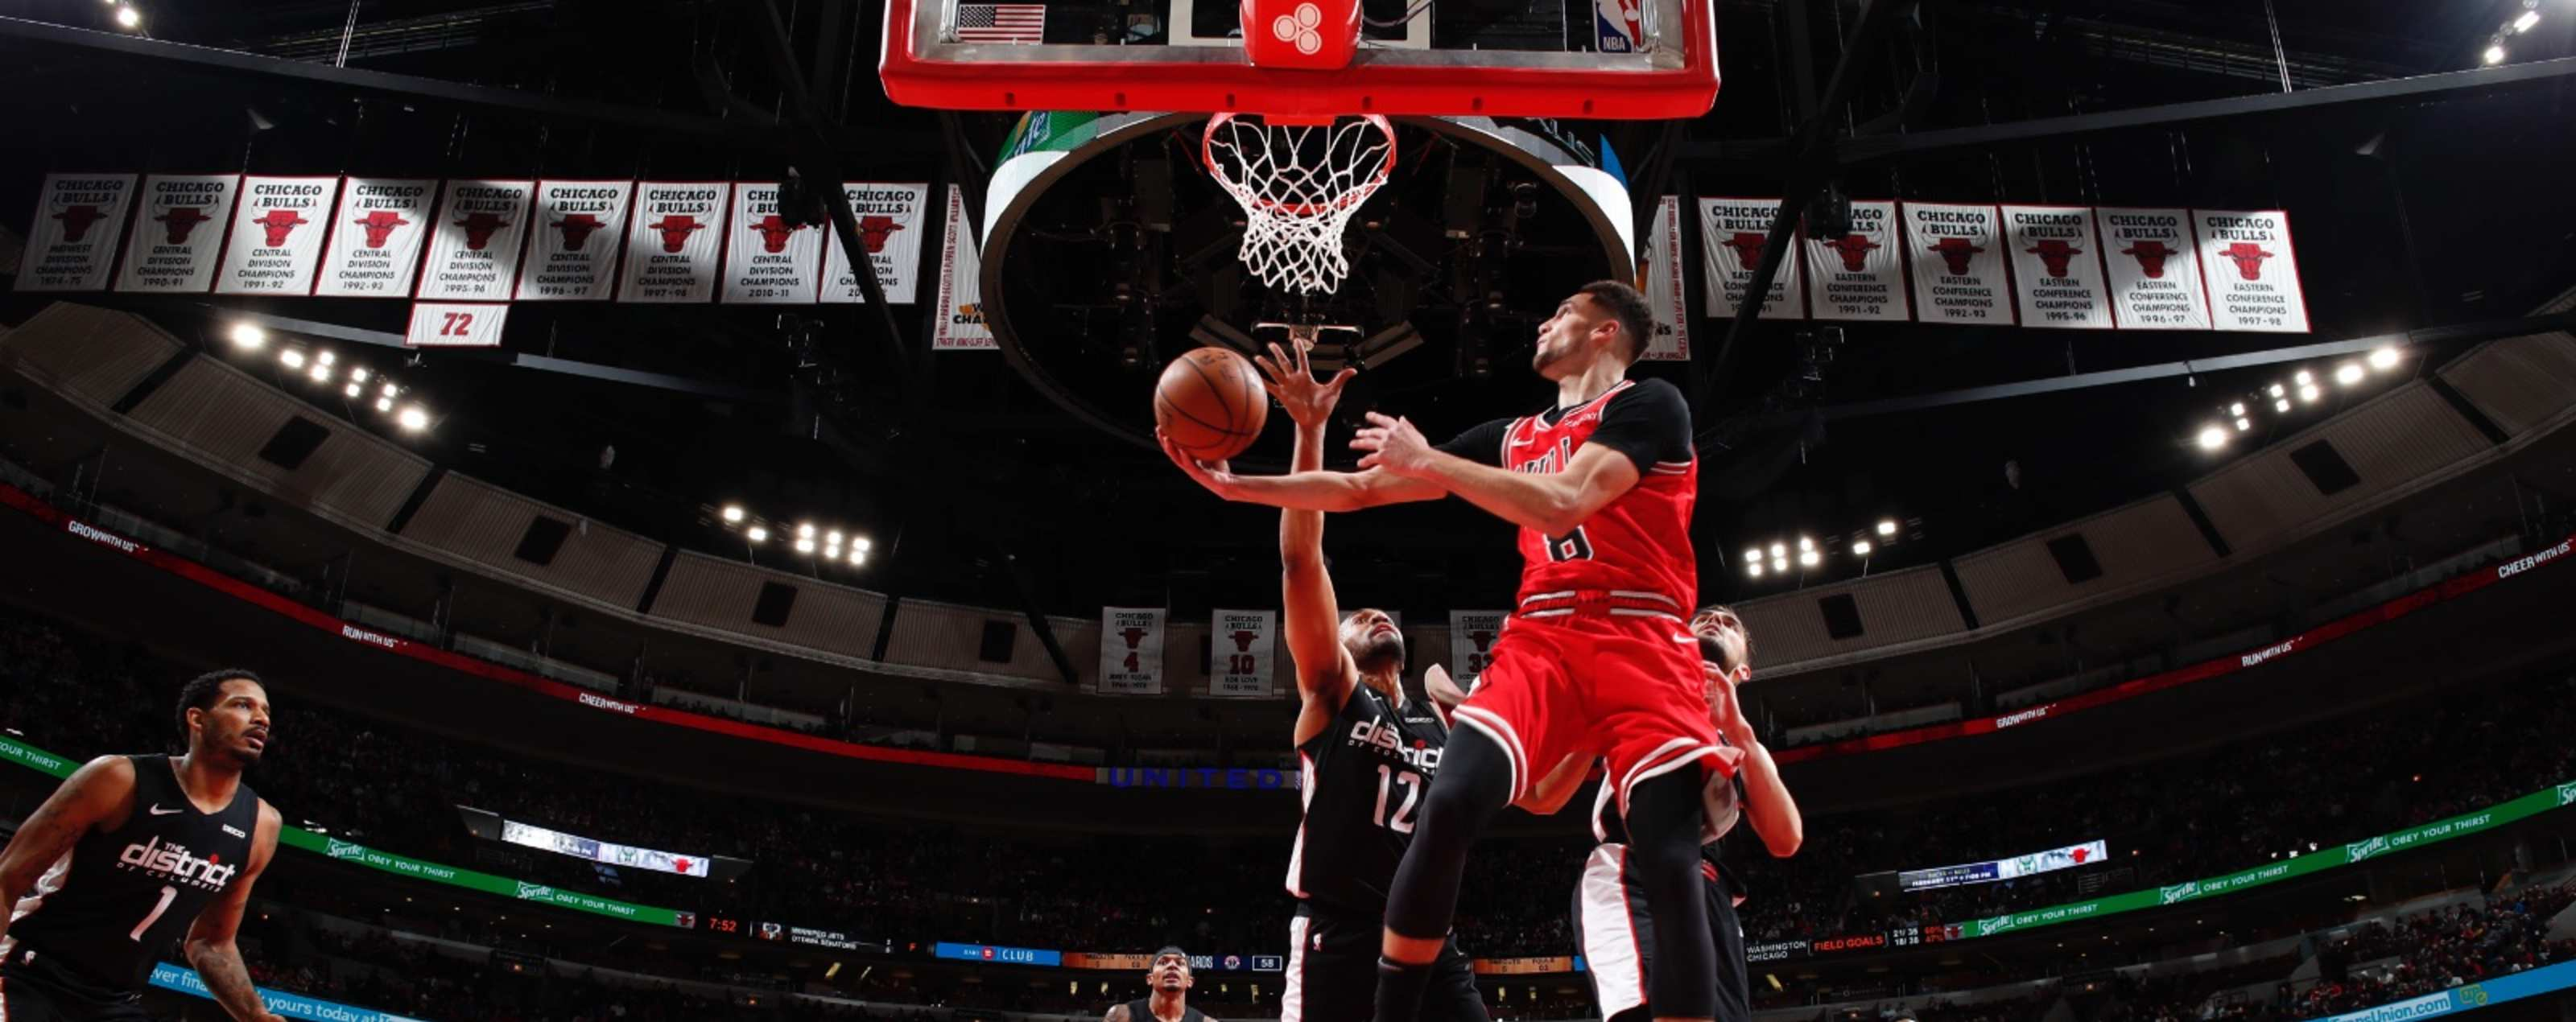 Zach LaVine goes up and under for the layup against the Washington Wizards